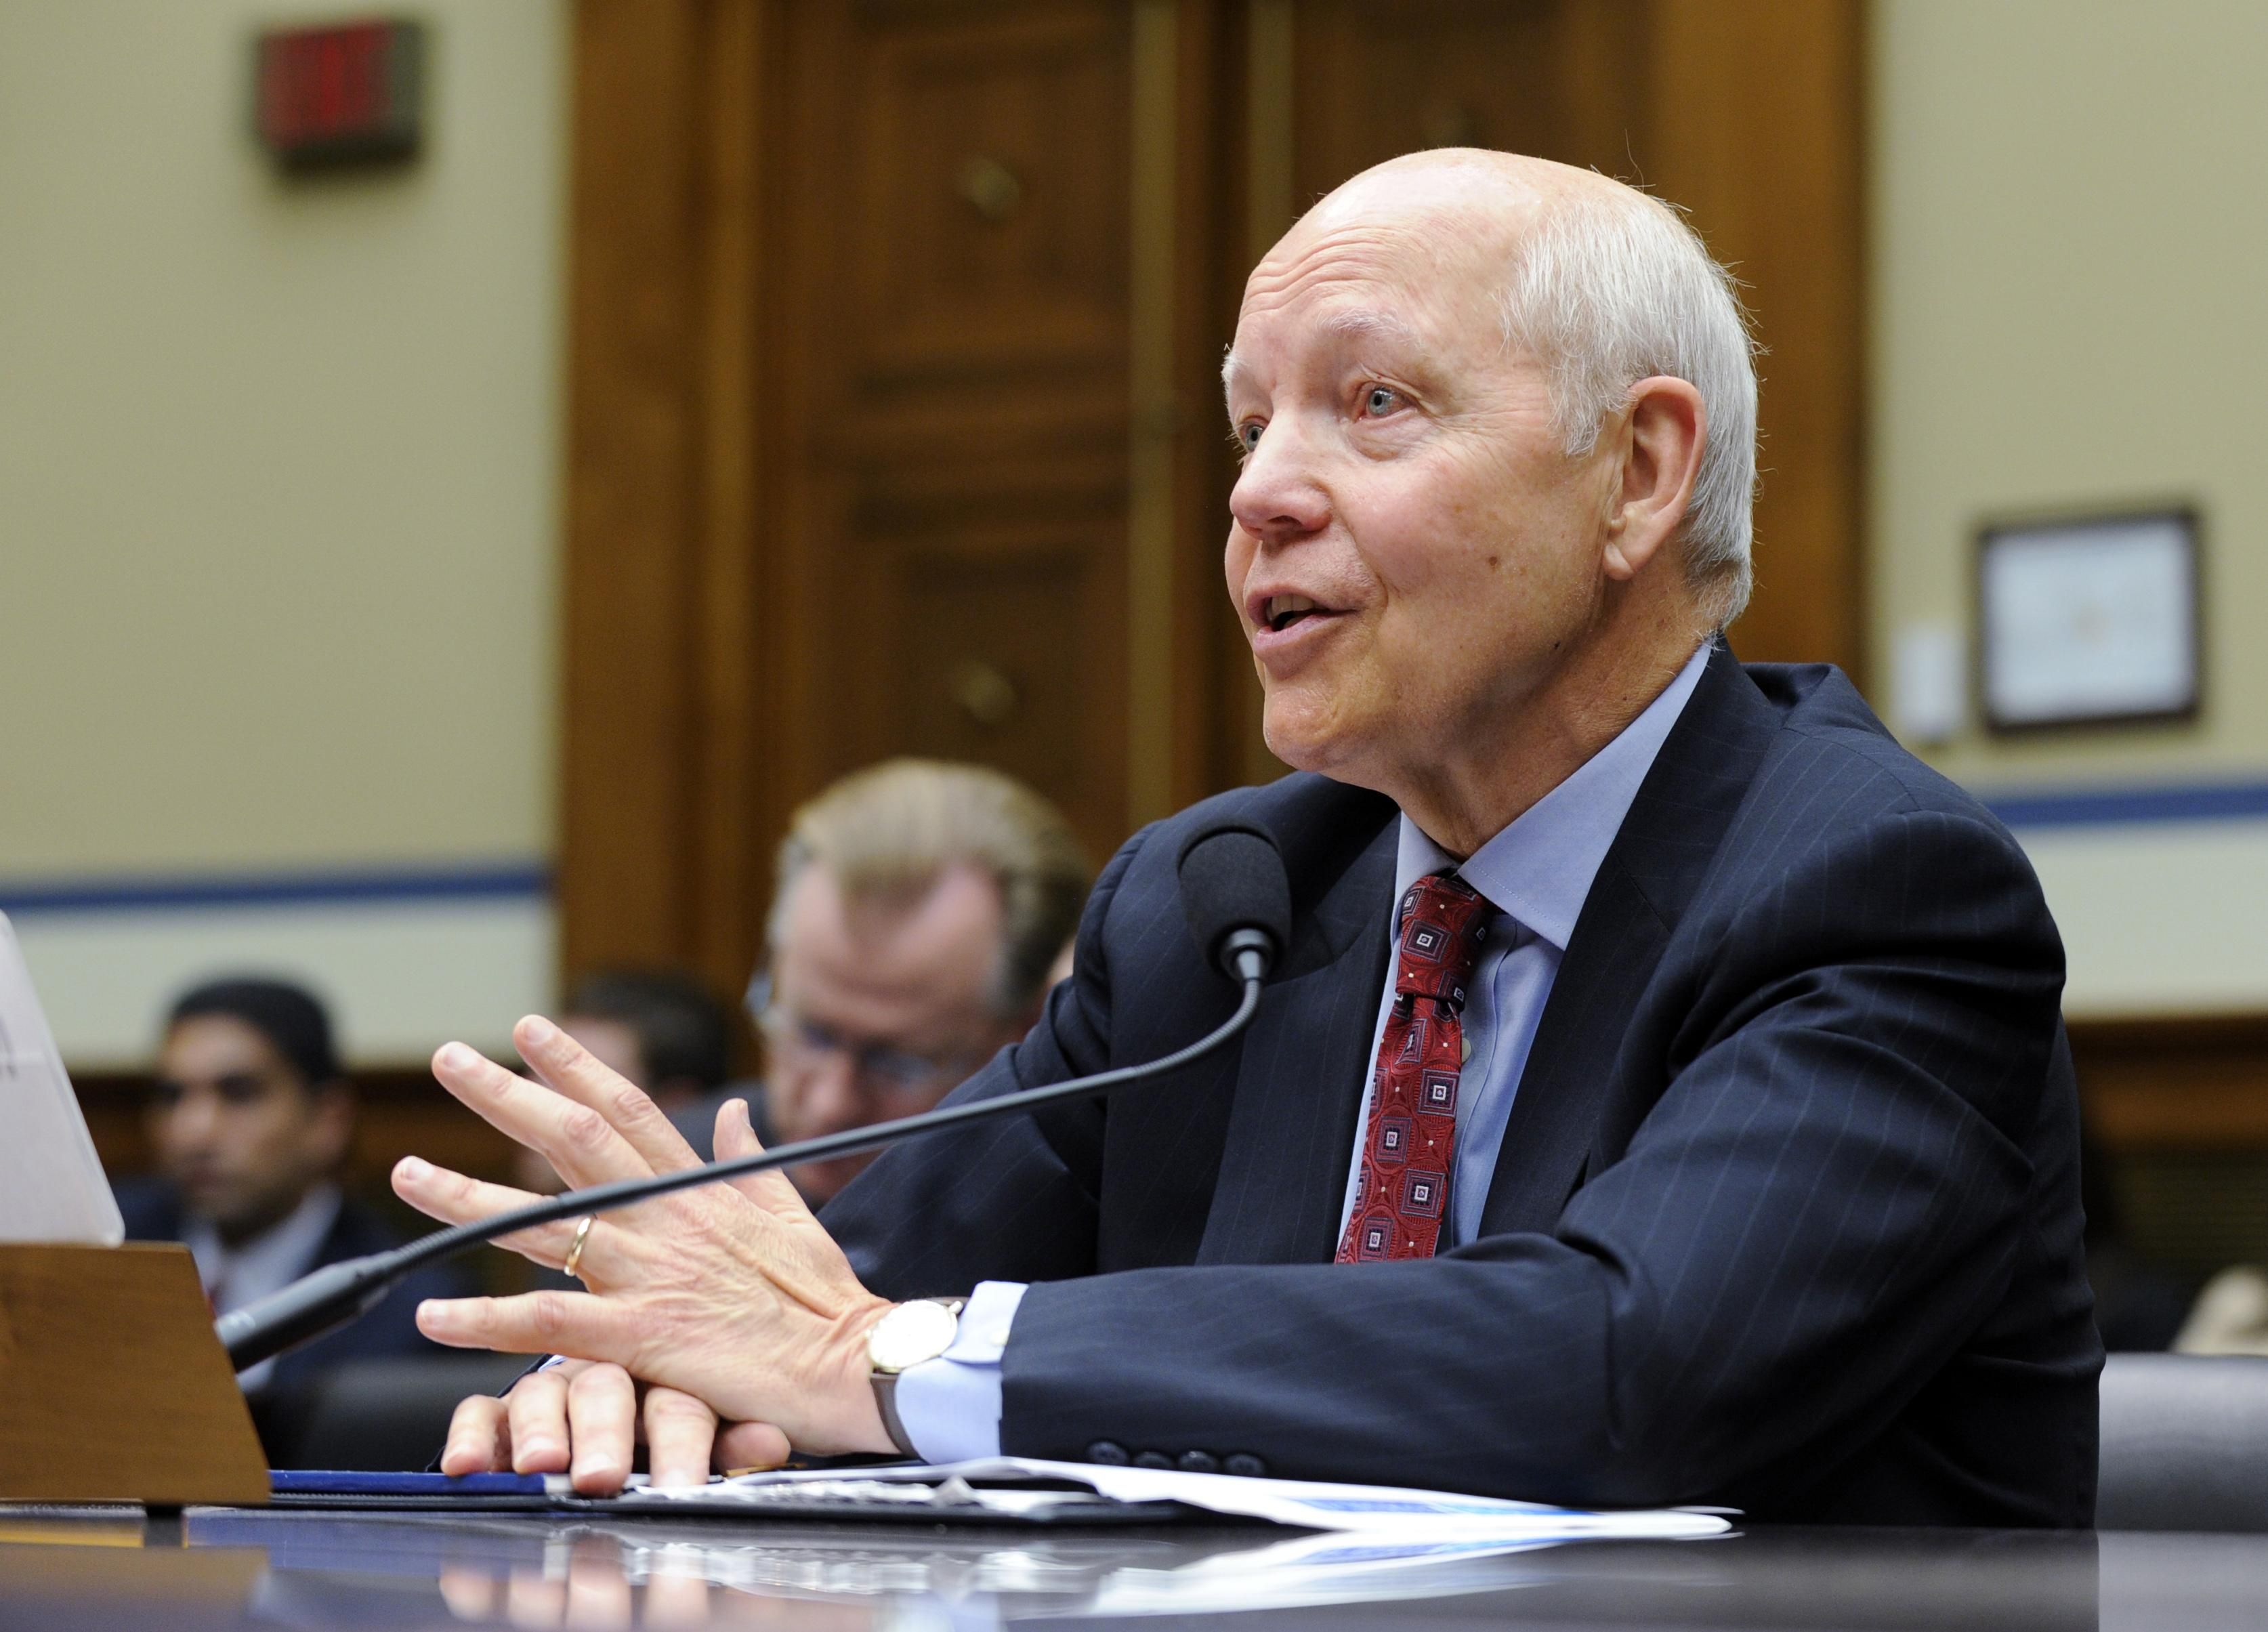 IRS head says budget cuts could delay tax refunds